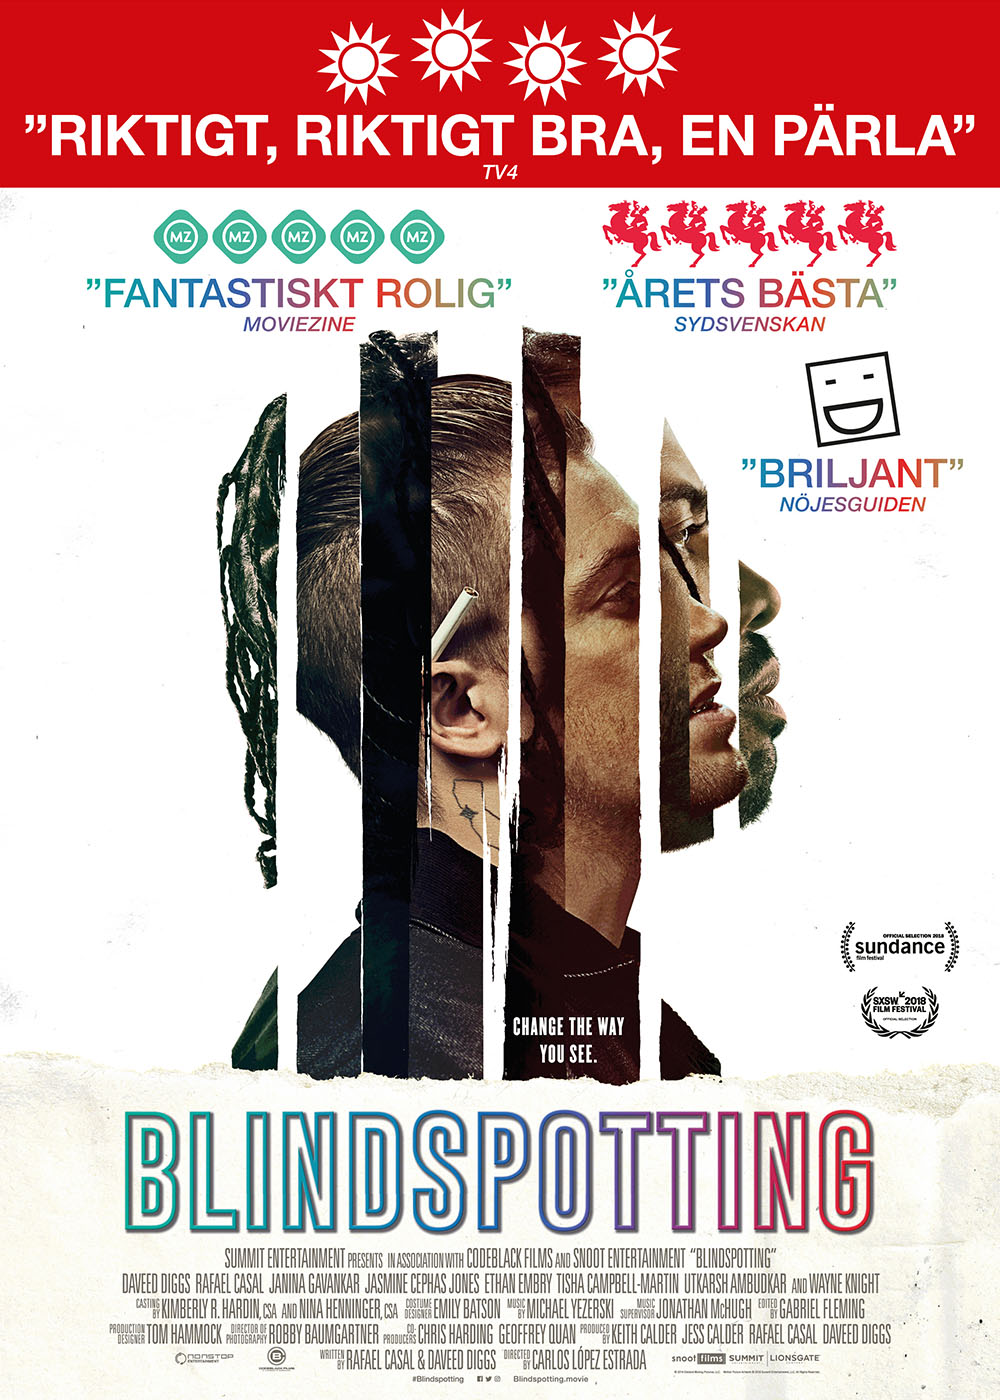 blindspotting_webrec.jpg